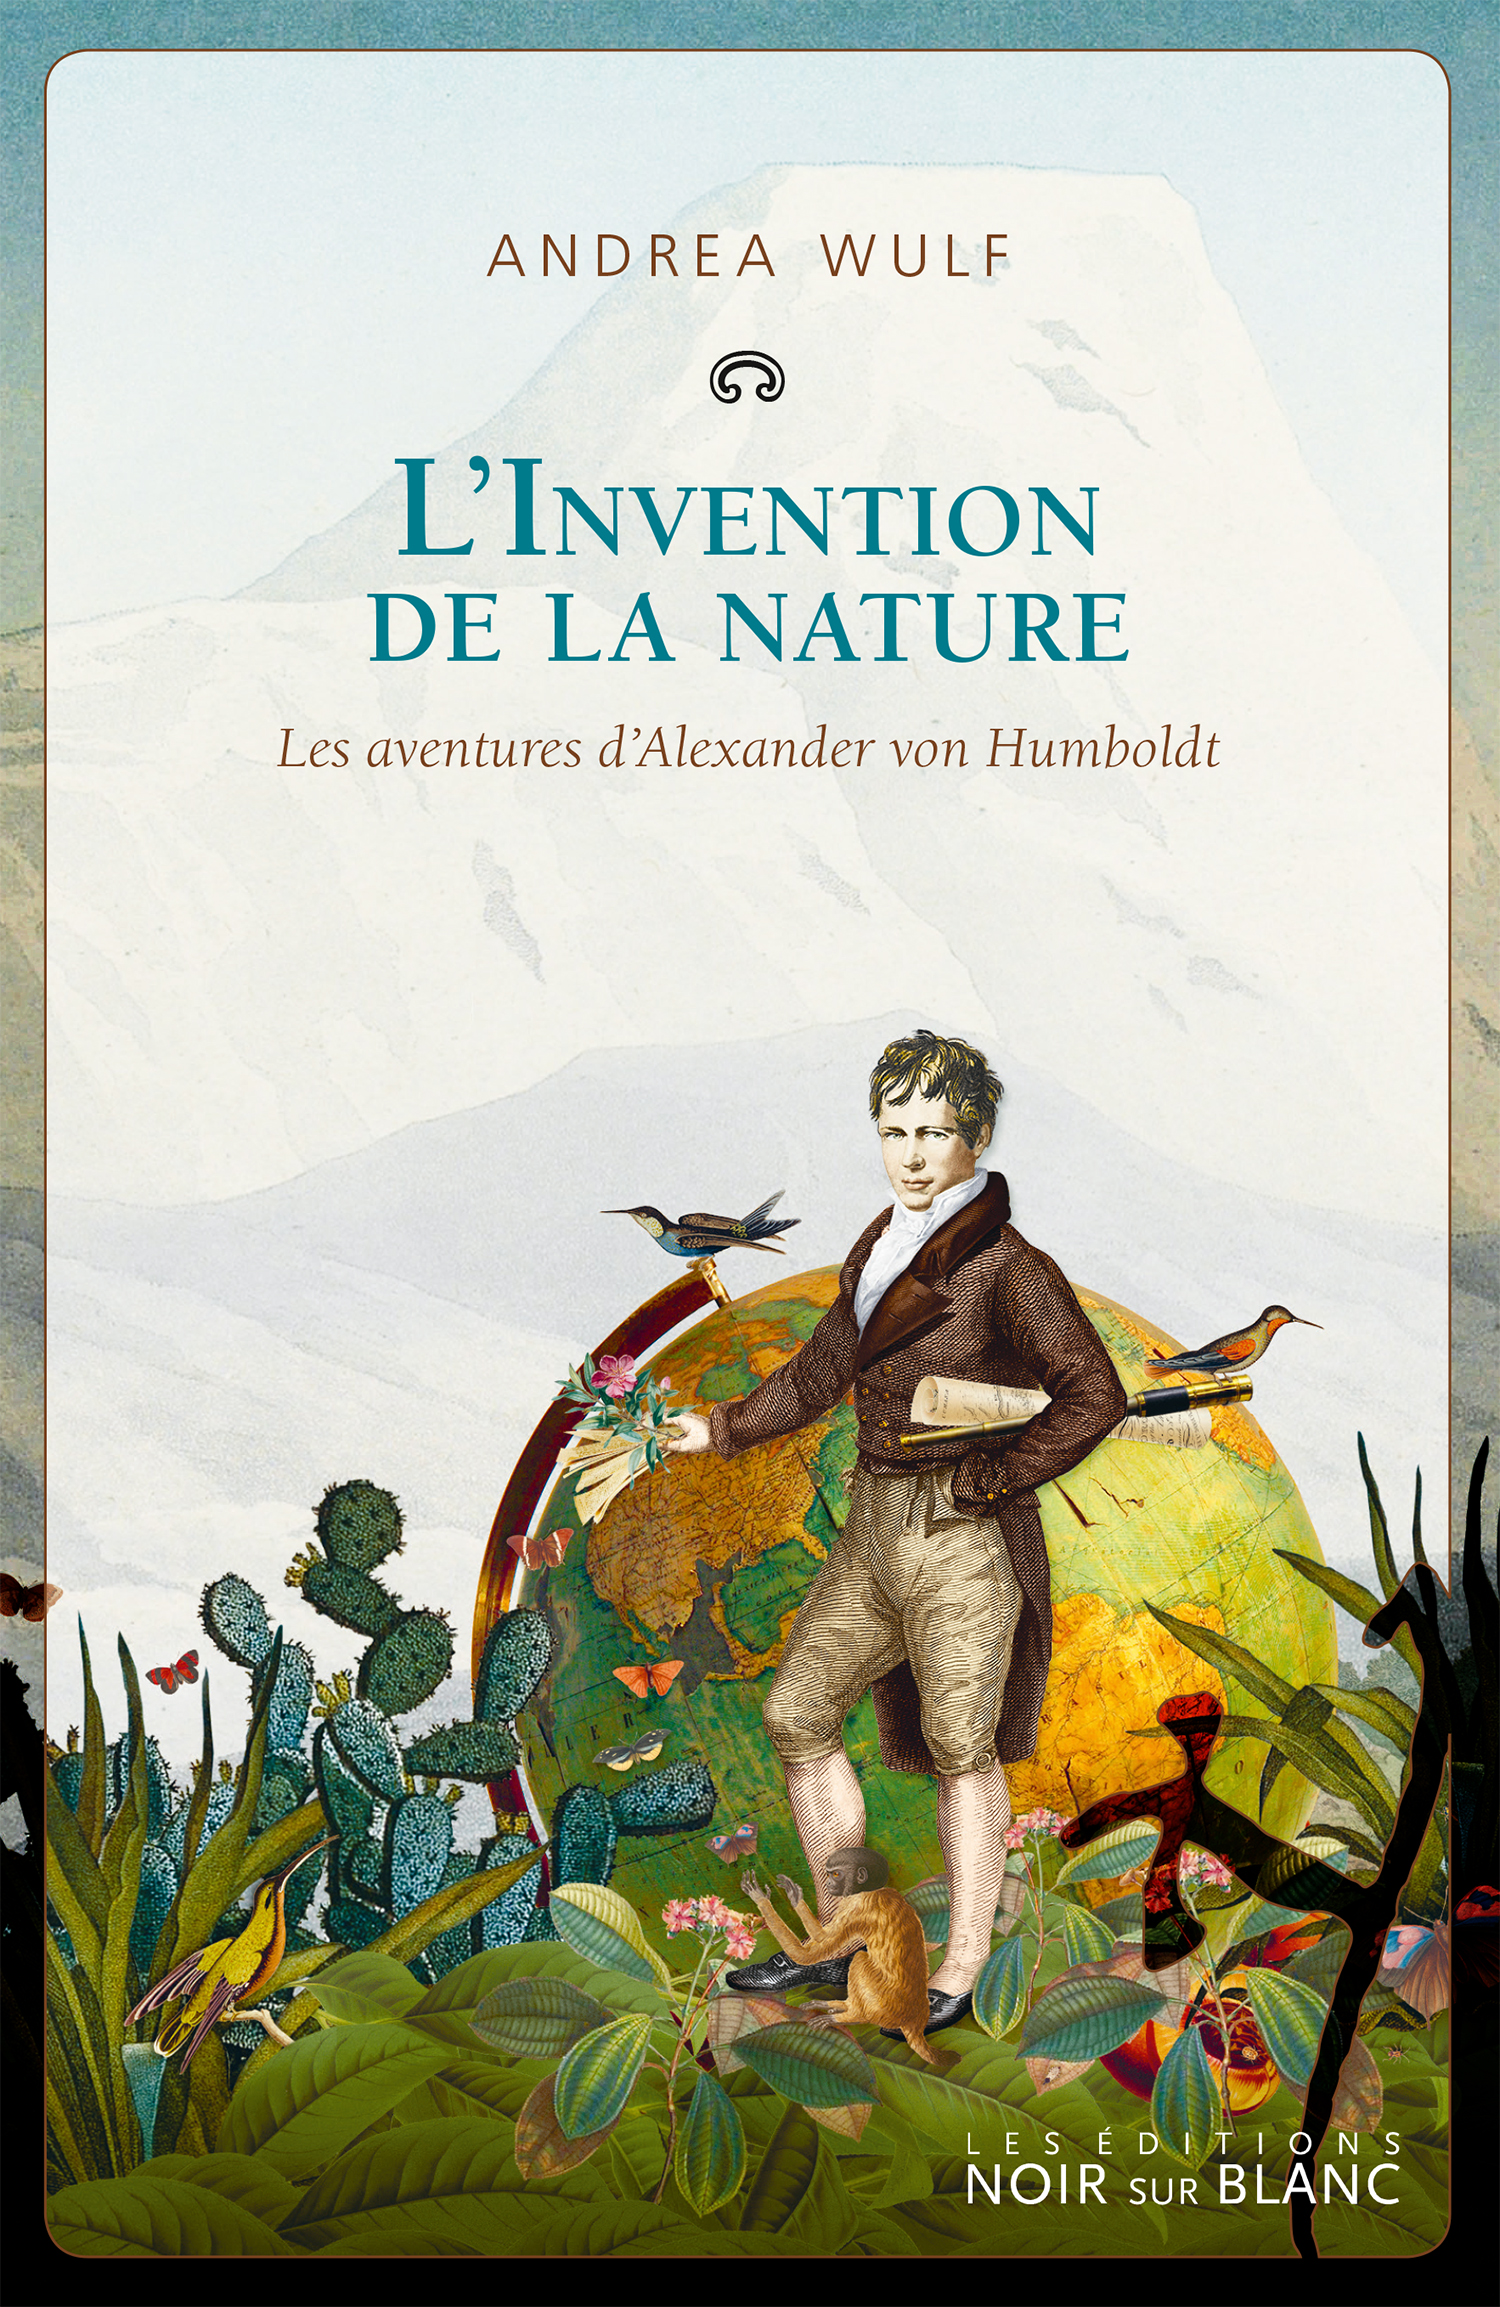 L'Invention de la nature